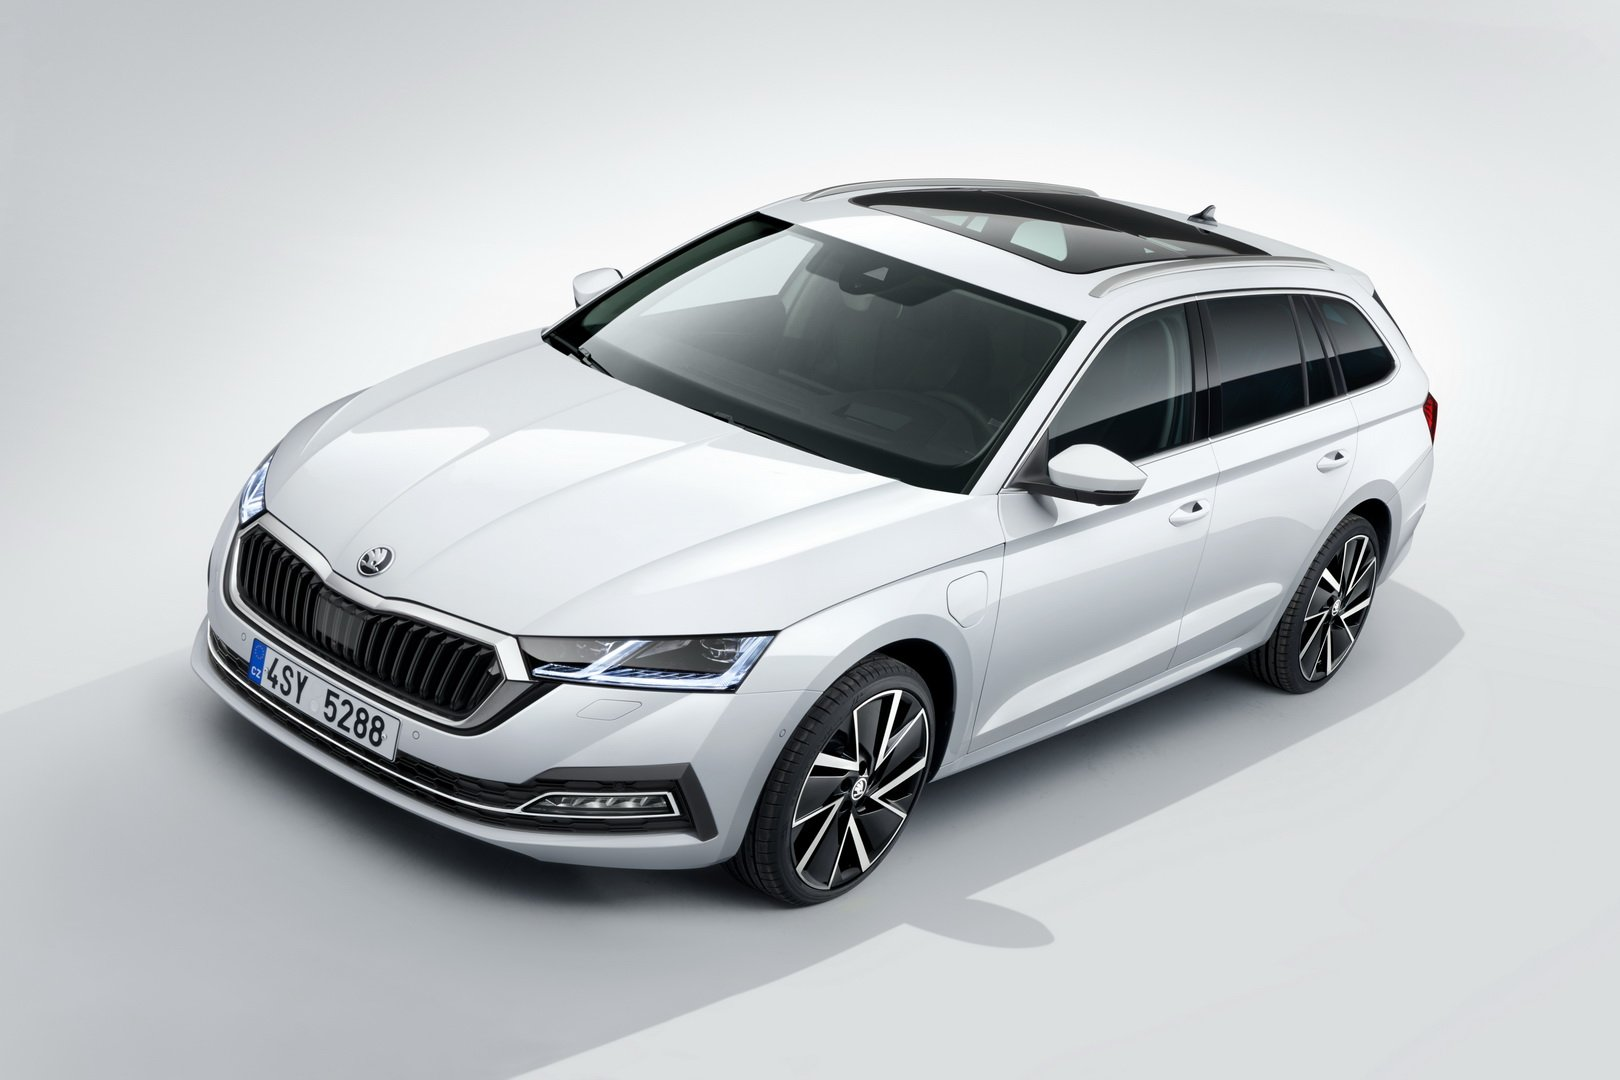 2020 Skoda Octavia Debuts With Hybrid Engines 200 Hp Tdi And More Luxury Autoevolution